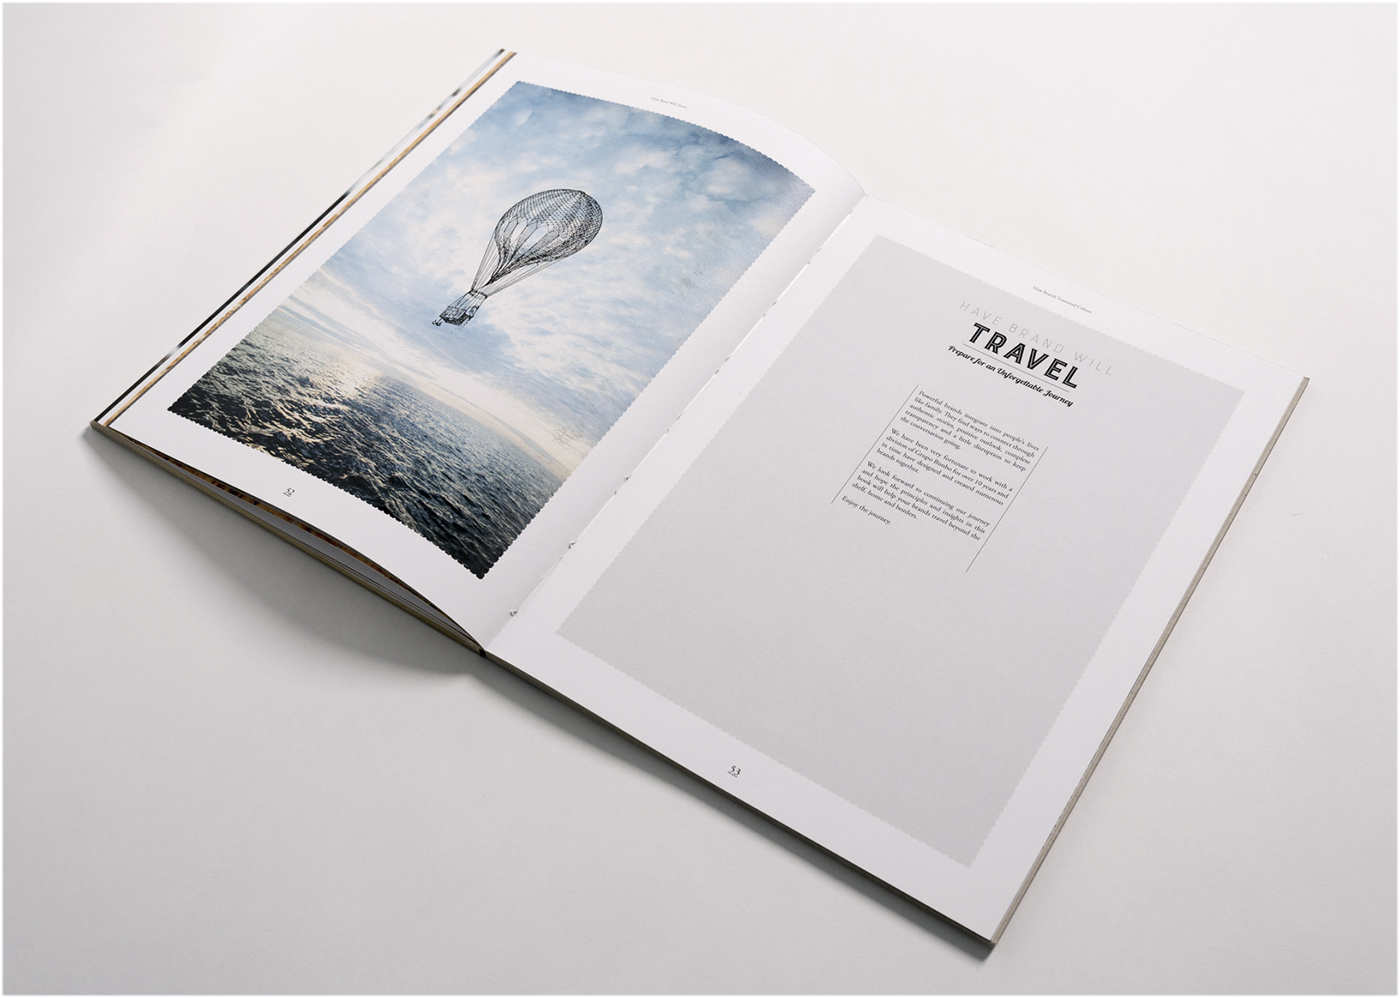 Travel spread that features a hot air balloon within the minimalistic design.